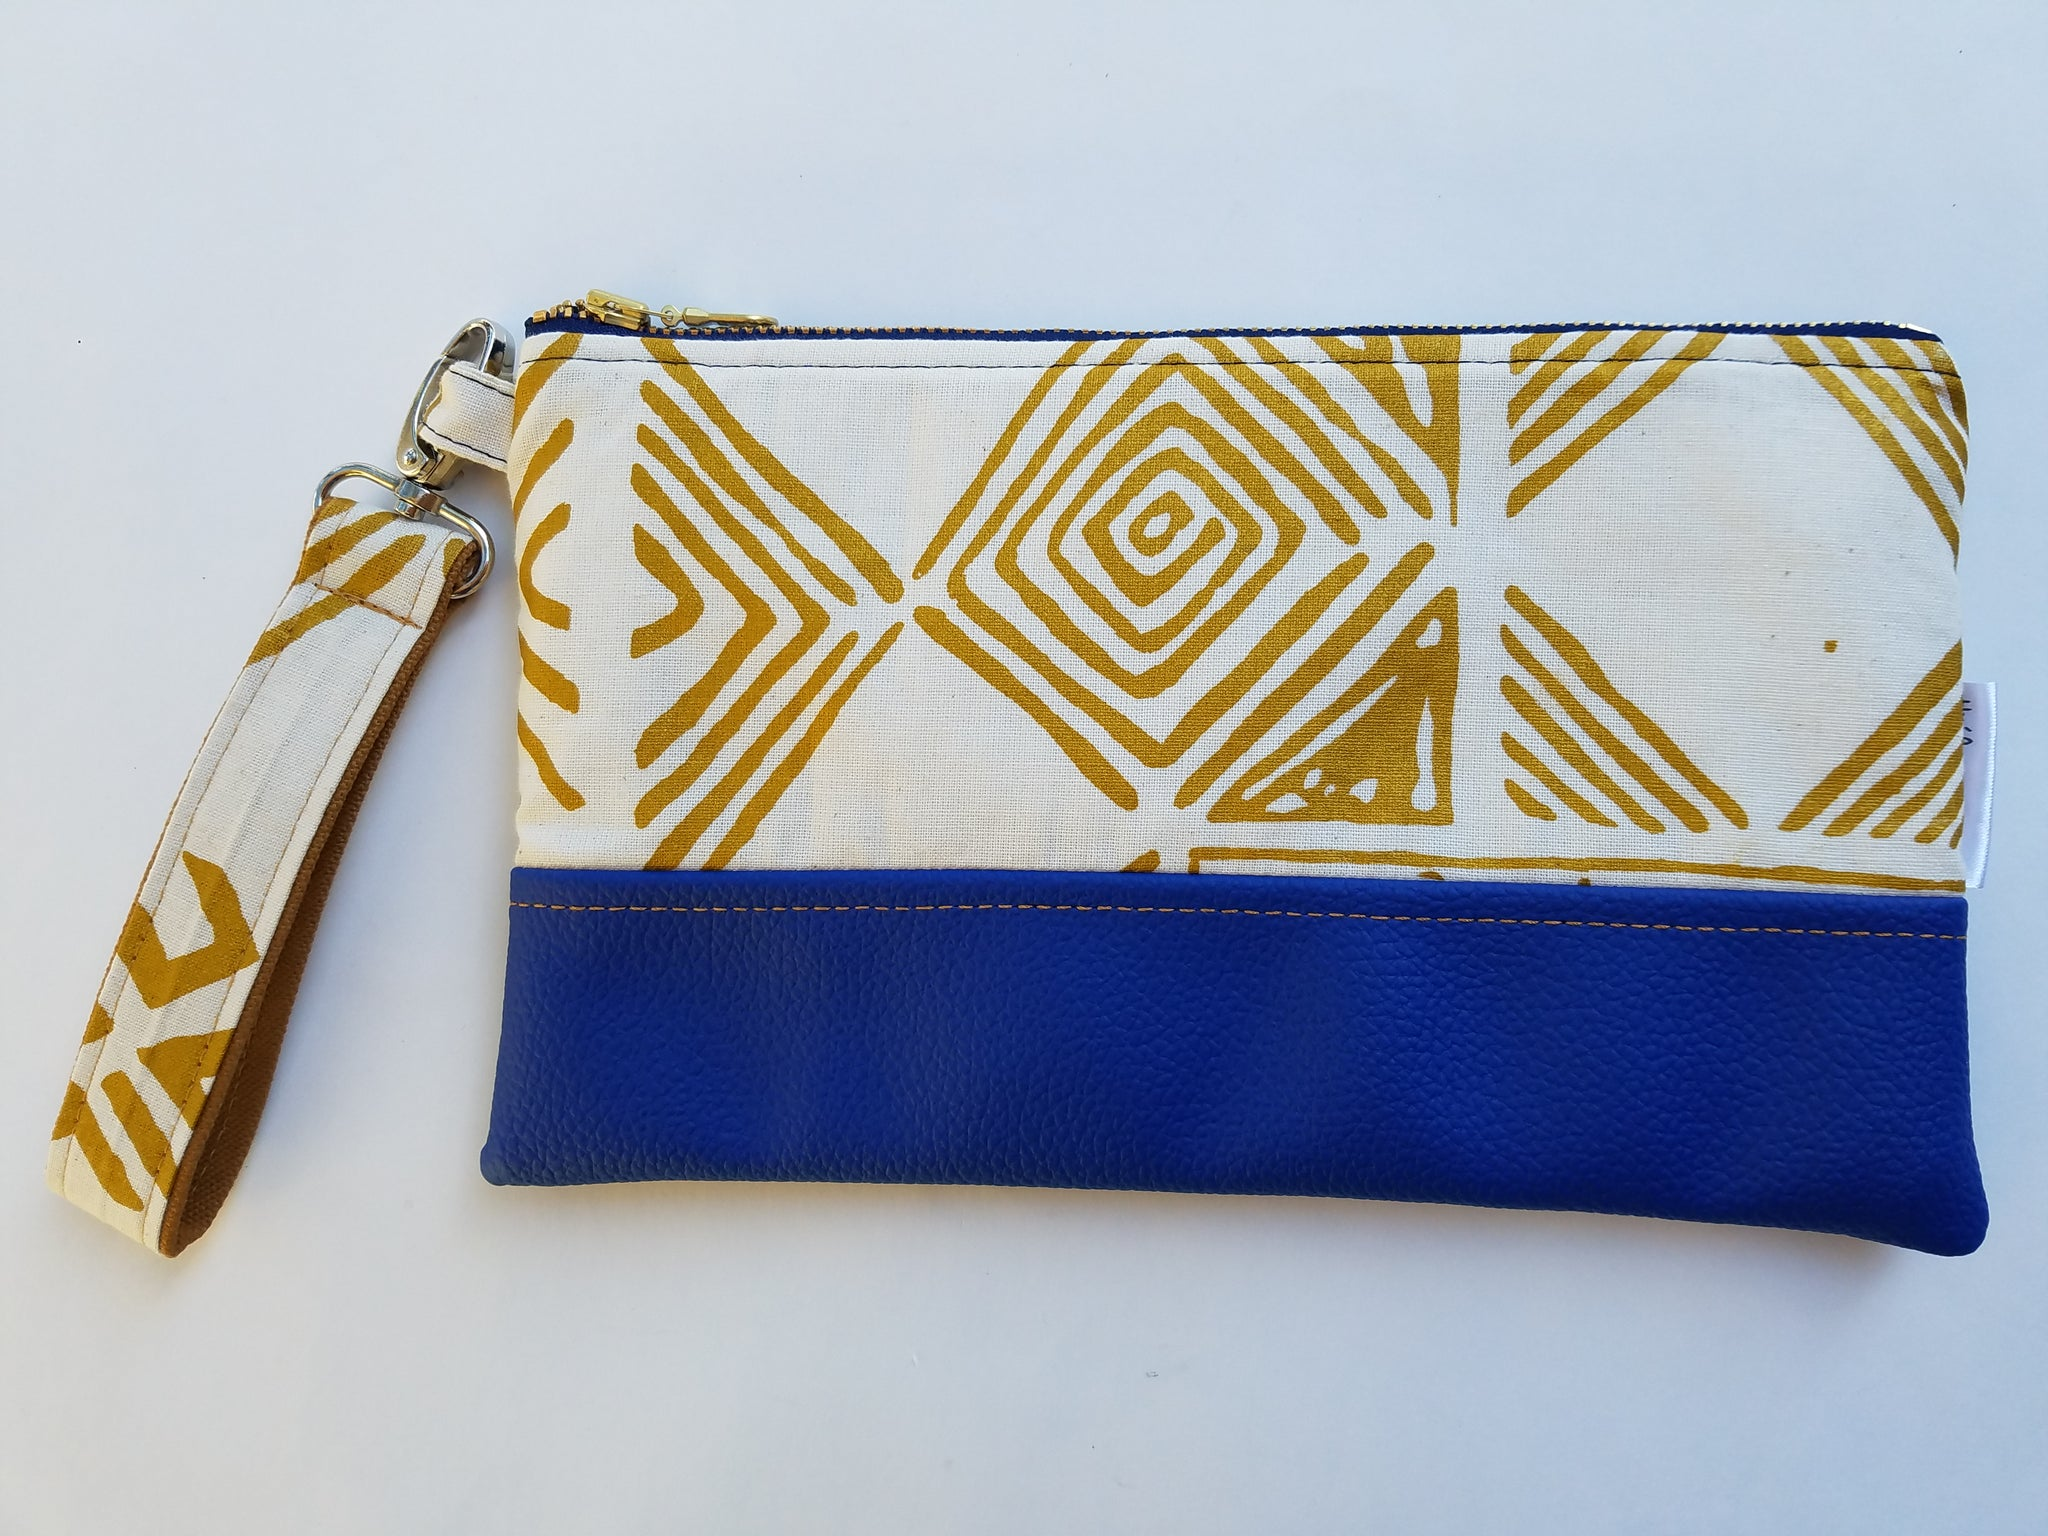 Ankara Zipper Pouch in Blue & Gold